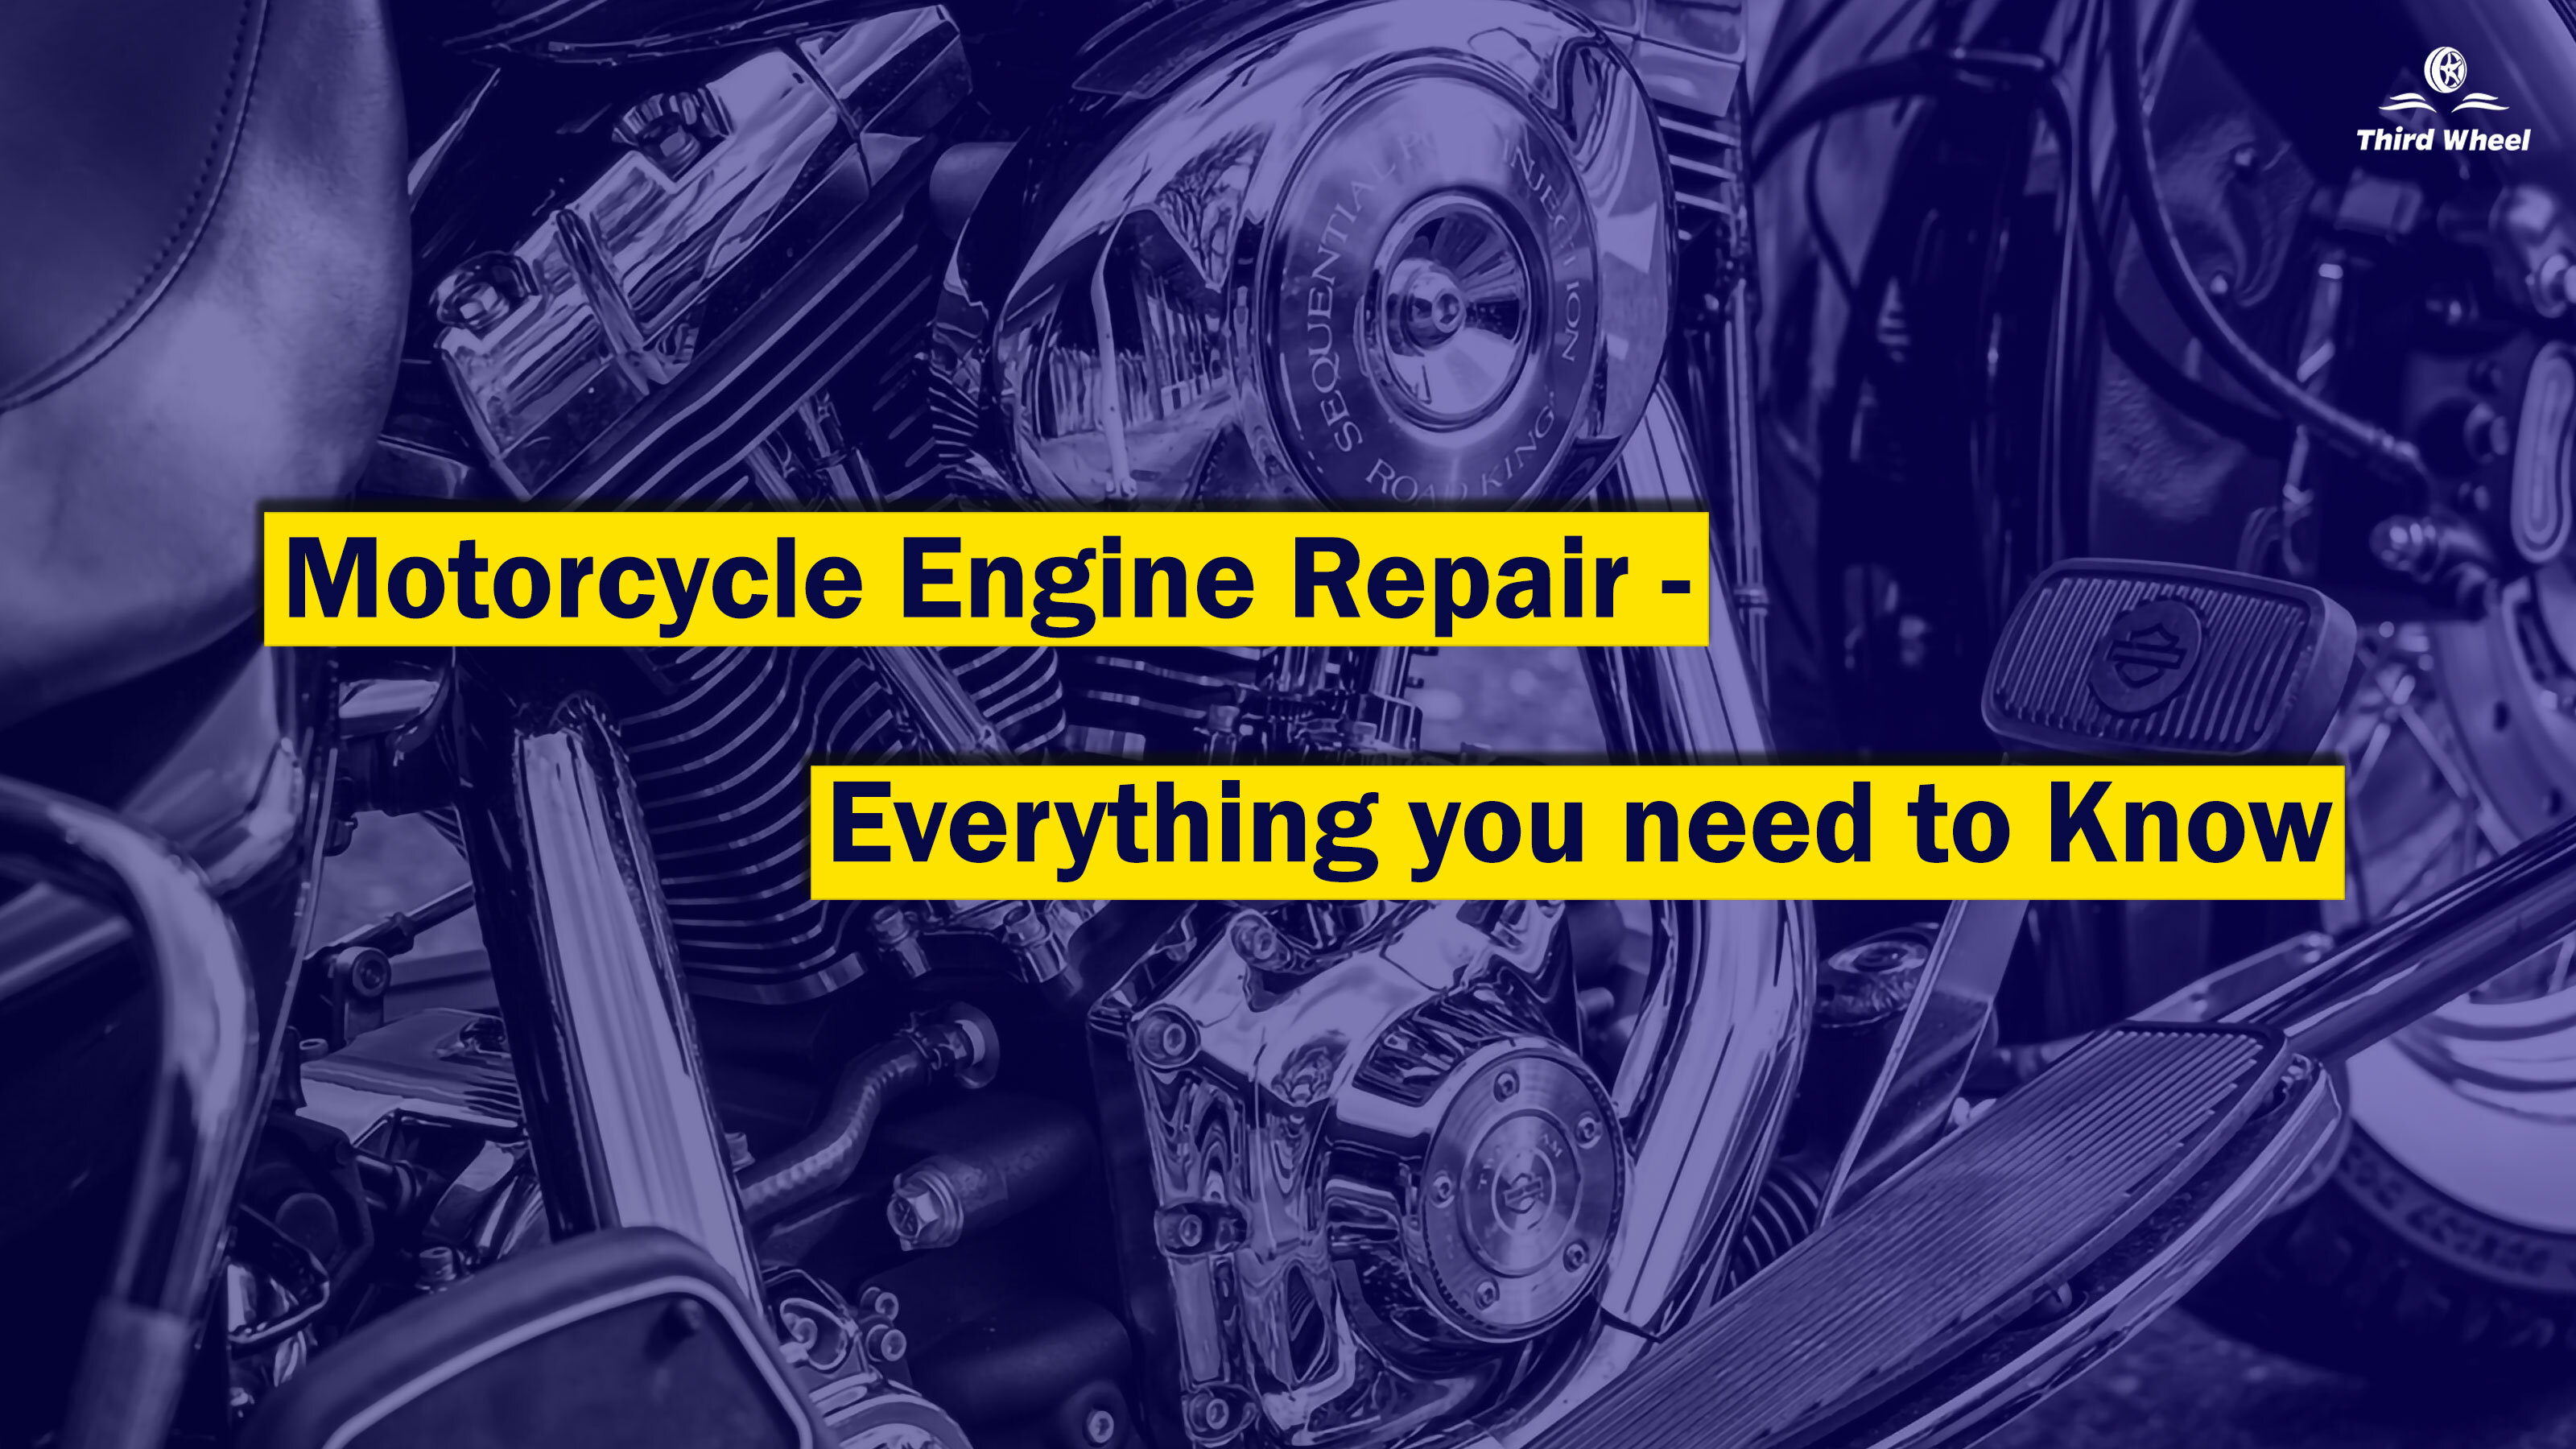 Motorcycle & Scooter Engine Repair - Everything you need to know